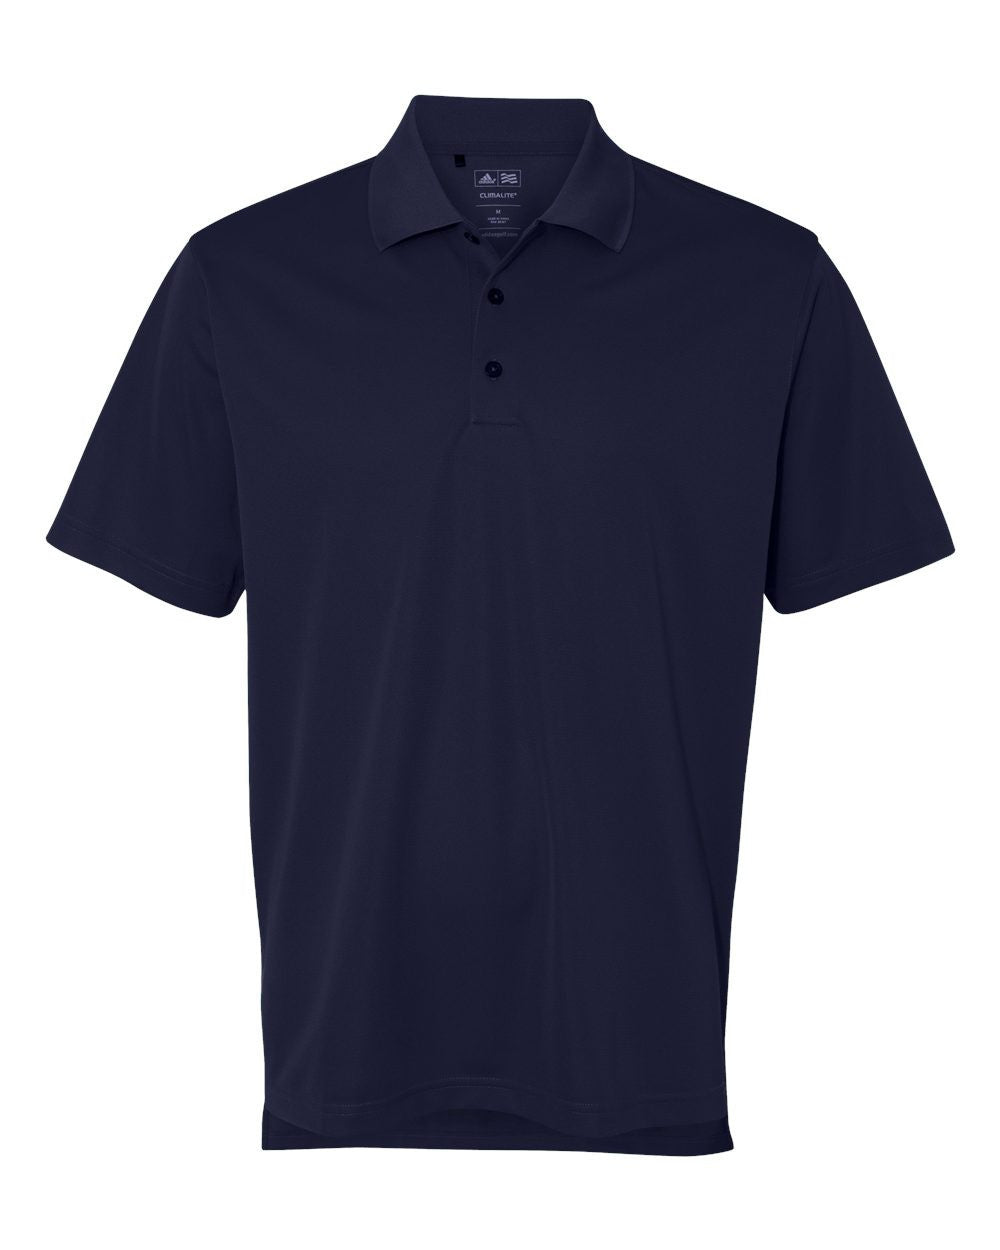 Performance Pique polo By Adidas